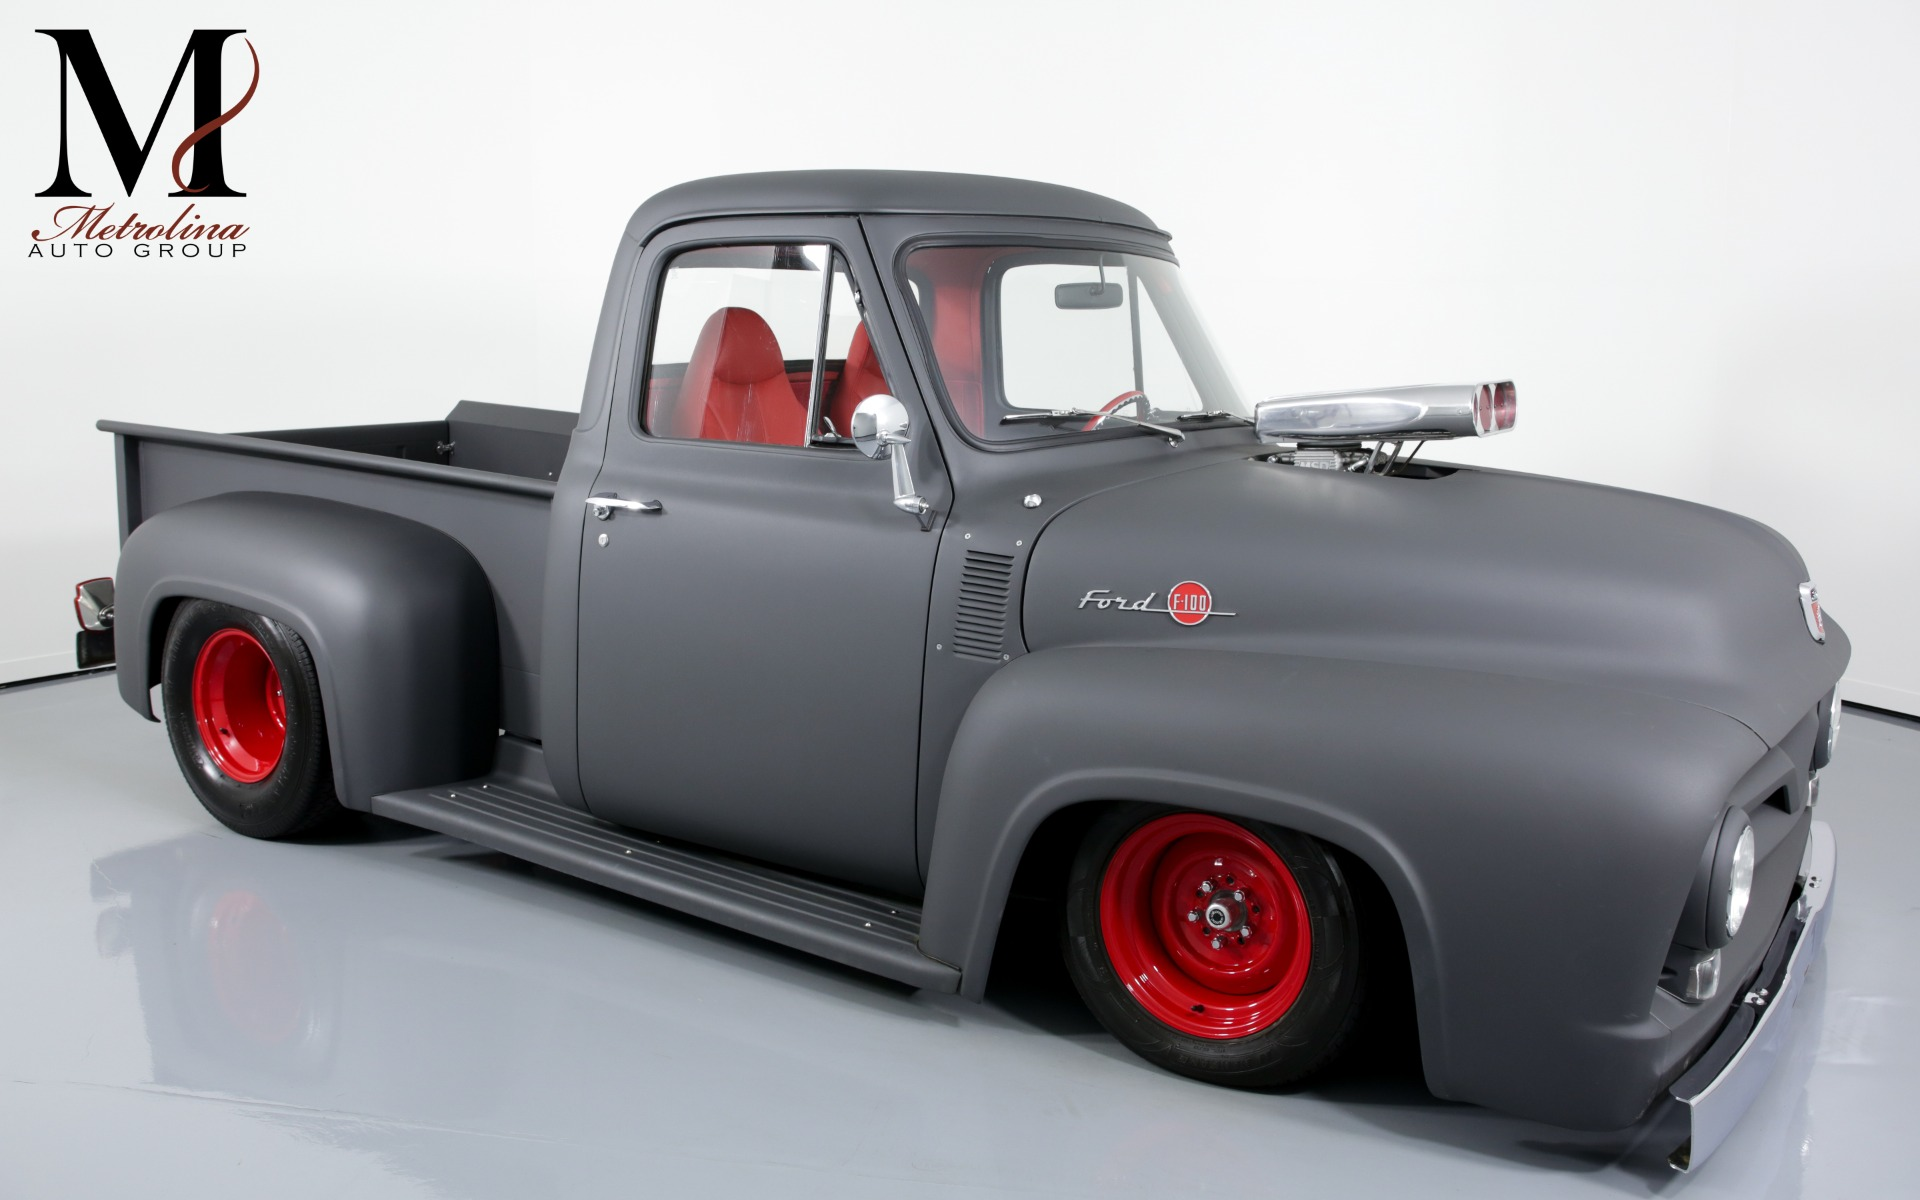 Used 1955 Ford F-100 for sale $99,996 at Metrolina Auto Group in Charlotte NC 28217 - 1